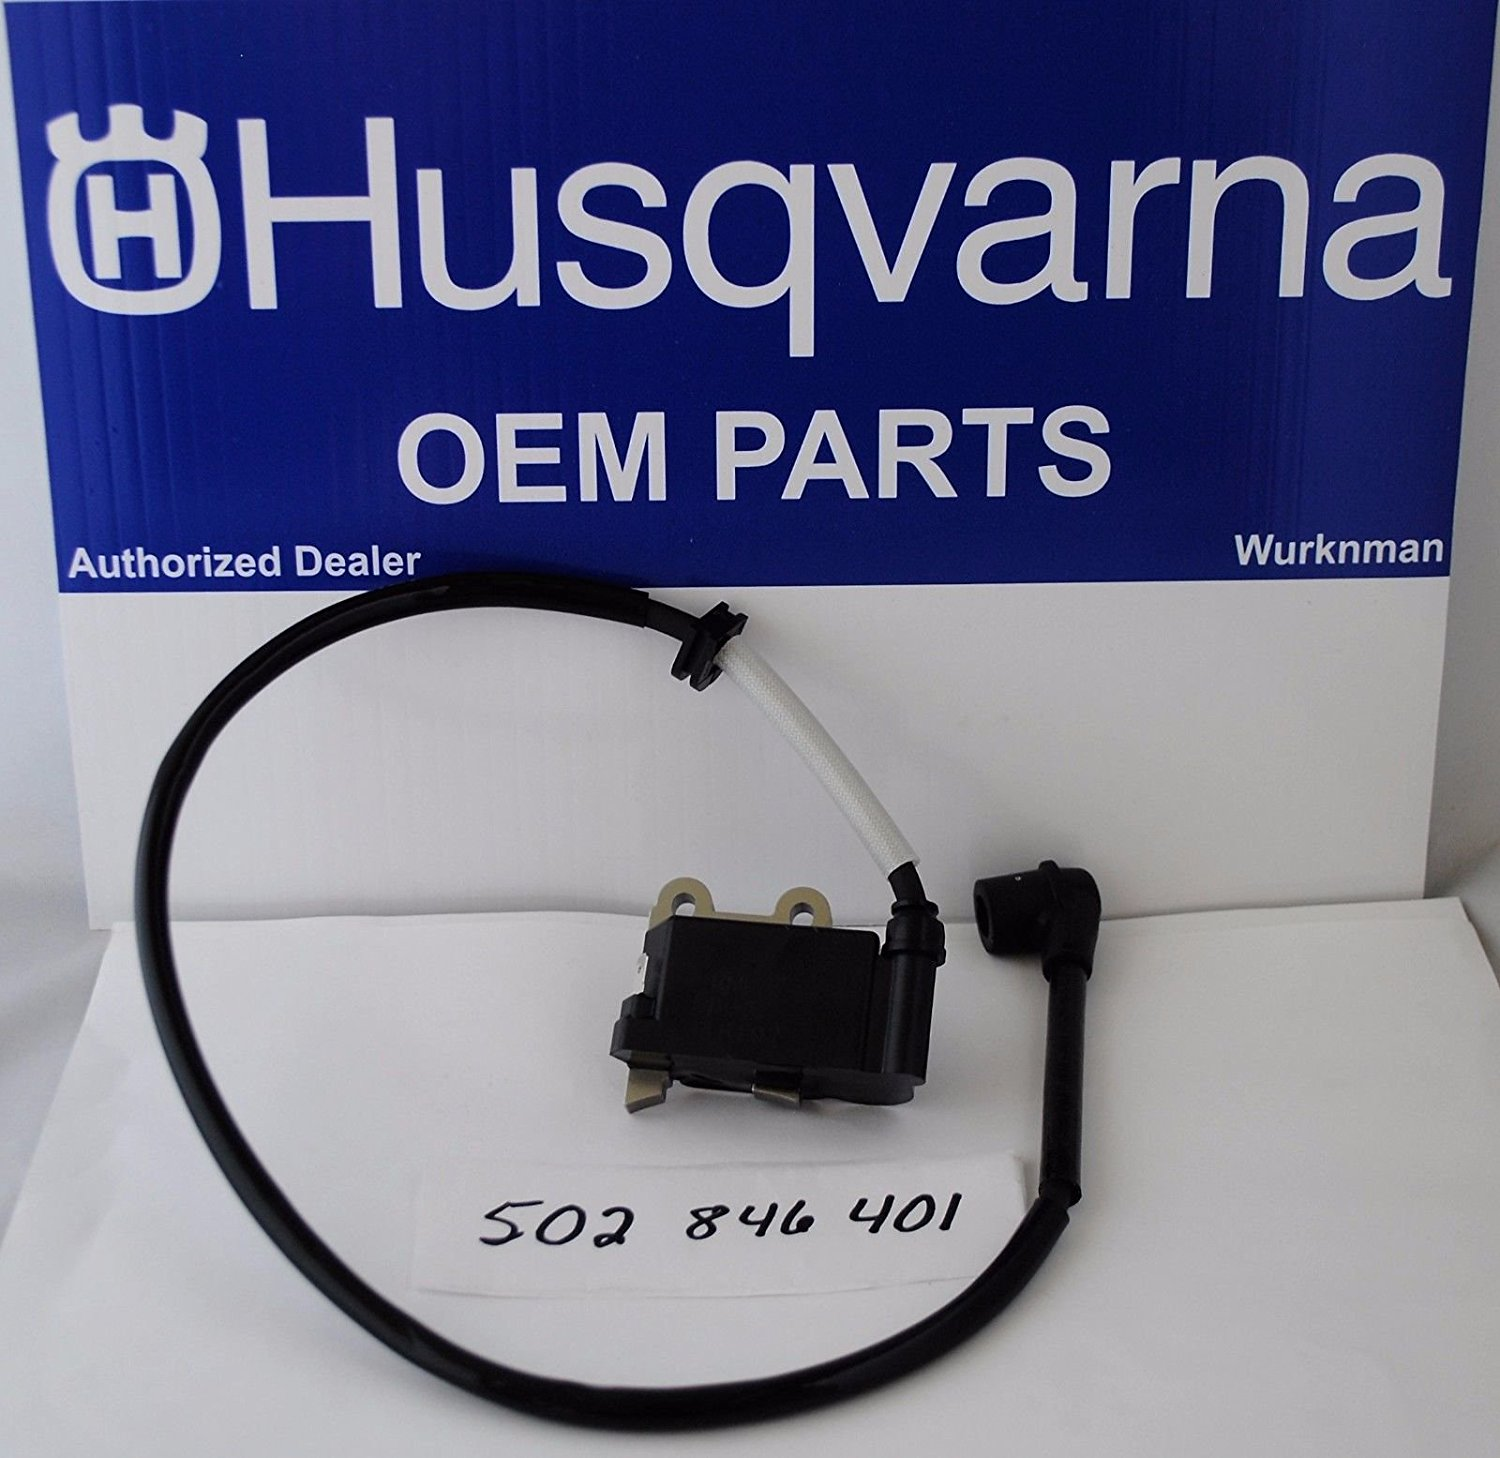 Cheap Husqvarna Ignition Module, find Husqvarna Ignition Module